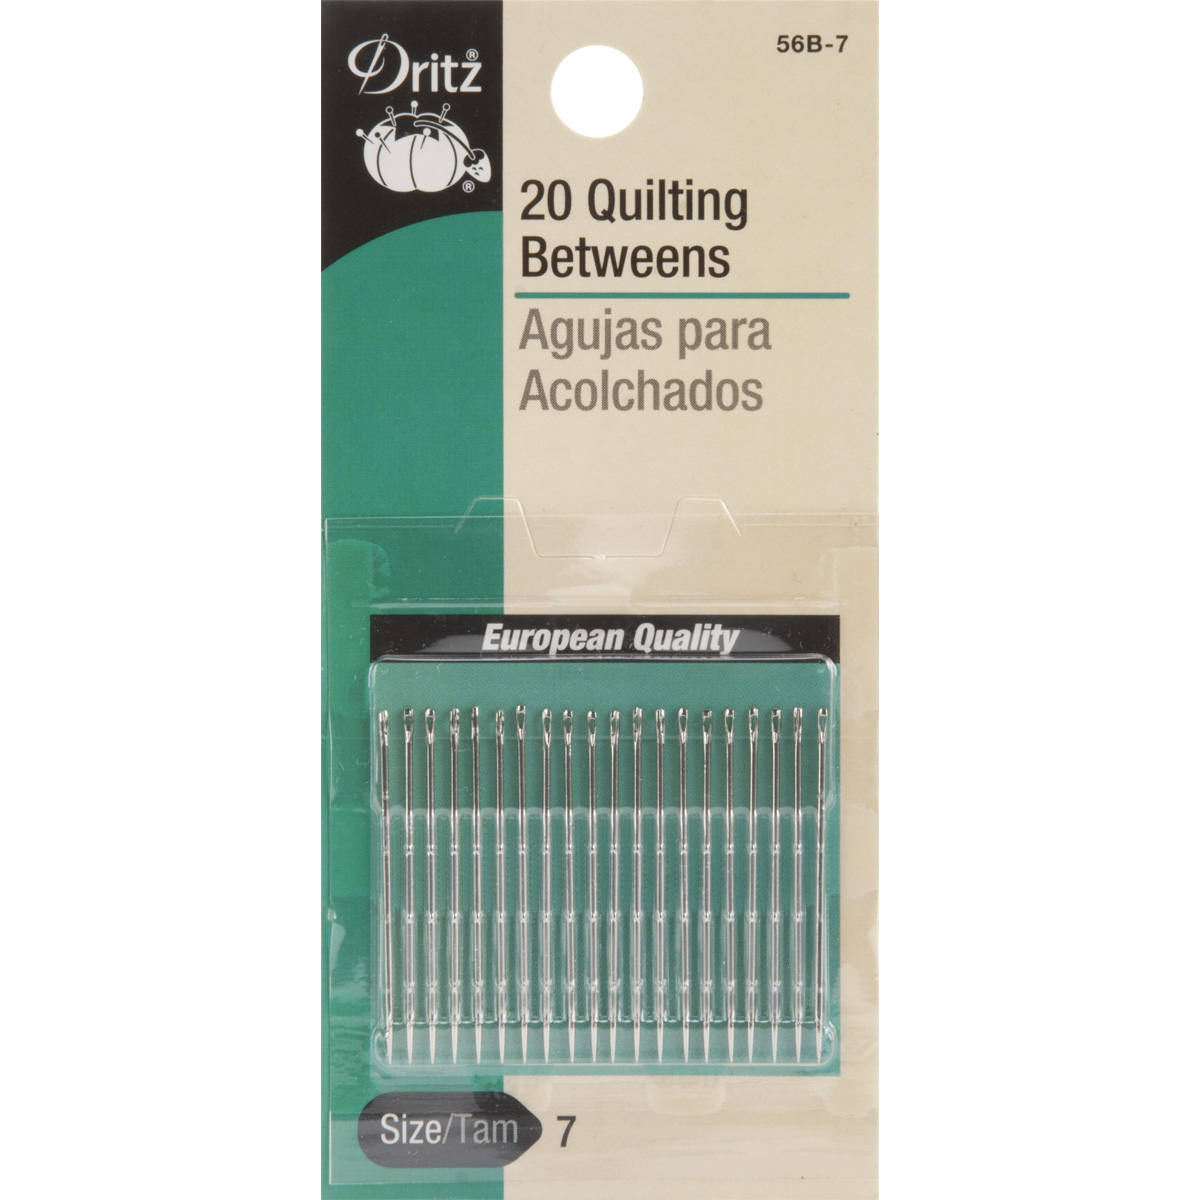 Dritz 20-Piece Quilting Between Hand Needles, Size 7 Multi-Colored